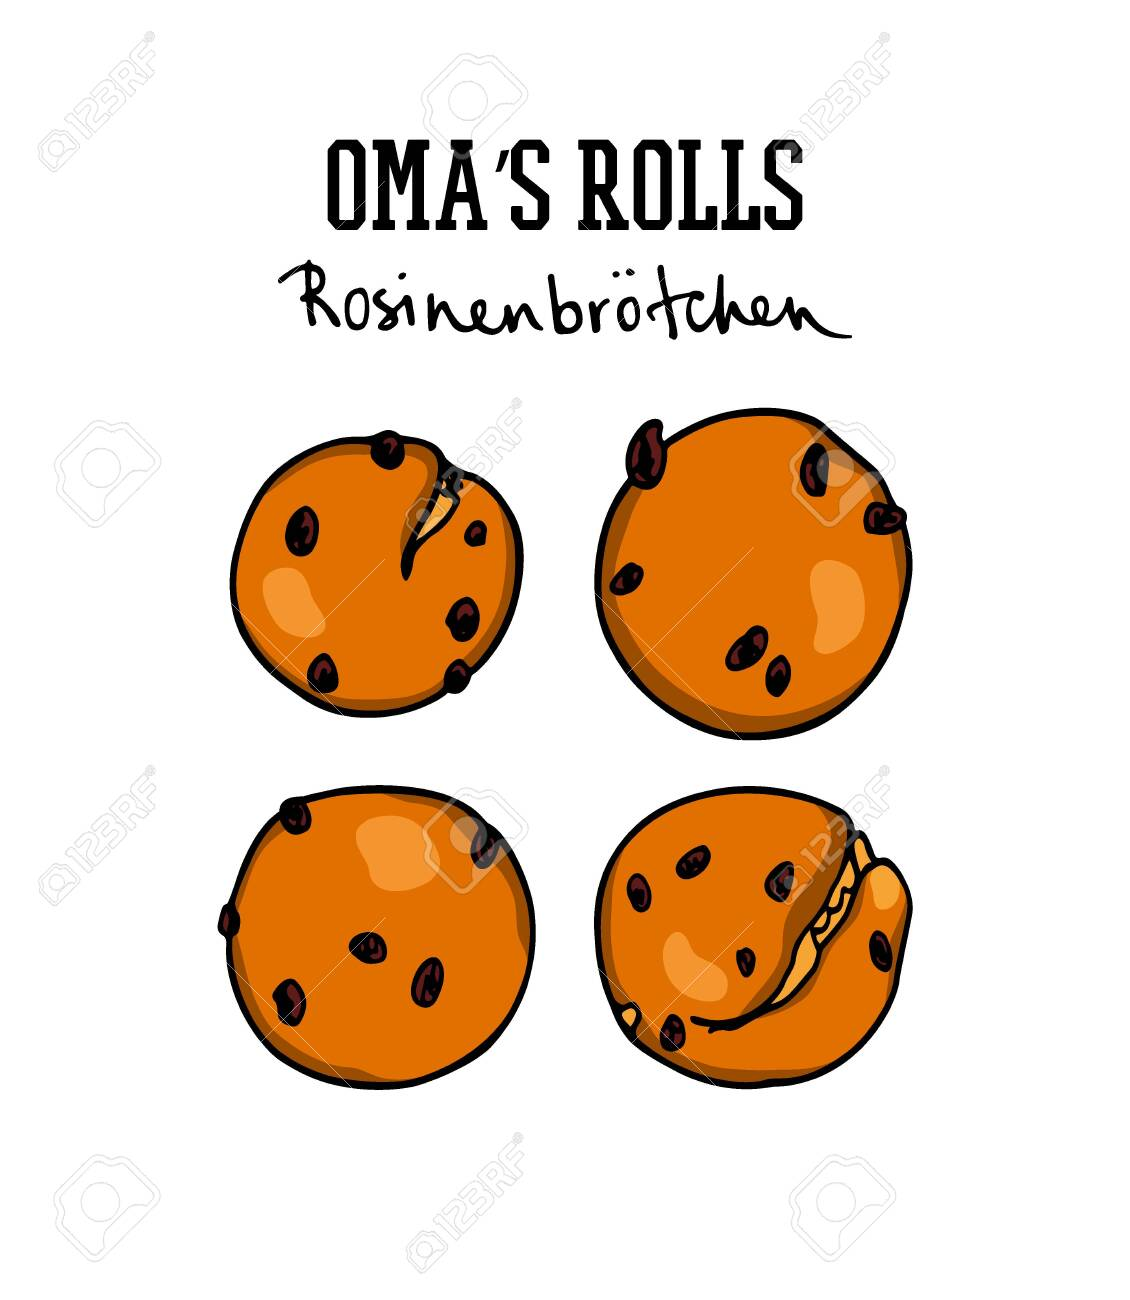 Vector card with hand drawn traditional German currant buns. Ink drawing, graphic style. Beautiful food design elements. - 134559472